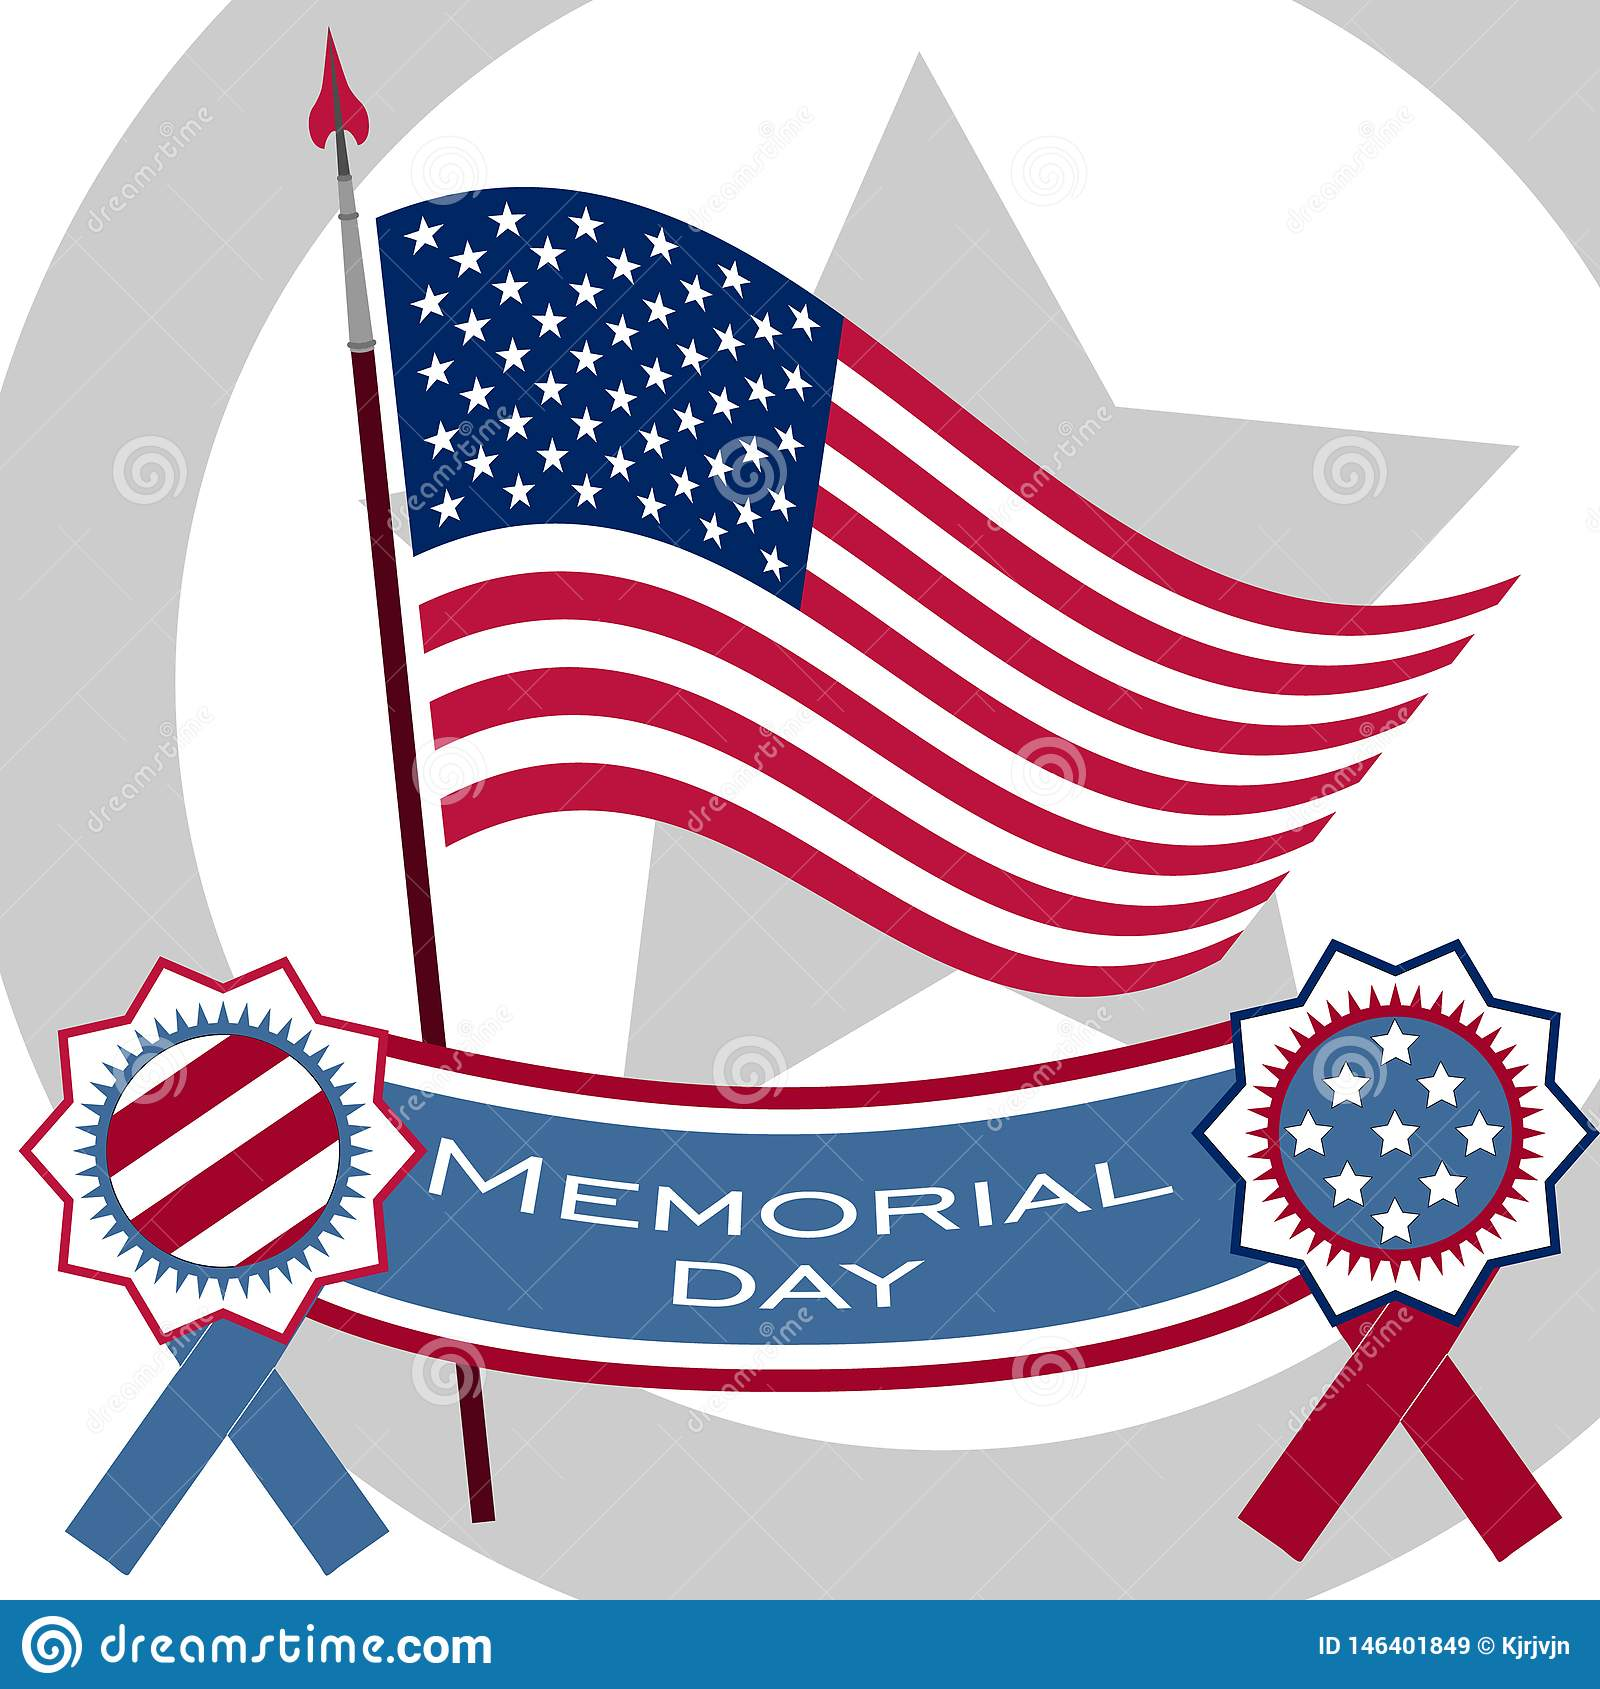 Memorial Day poster. Patriotic holiday banner with flag, veteran attributes like military and war signs and ammunition. USA